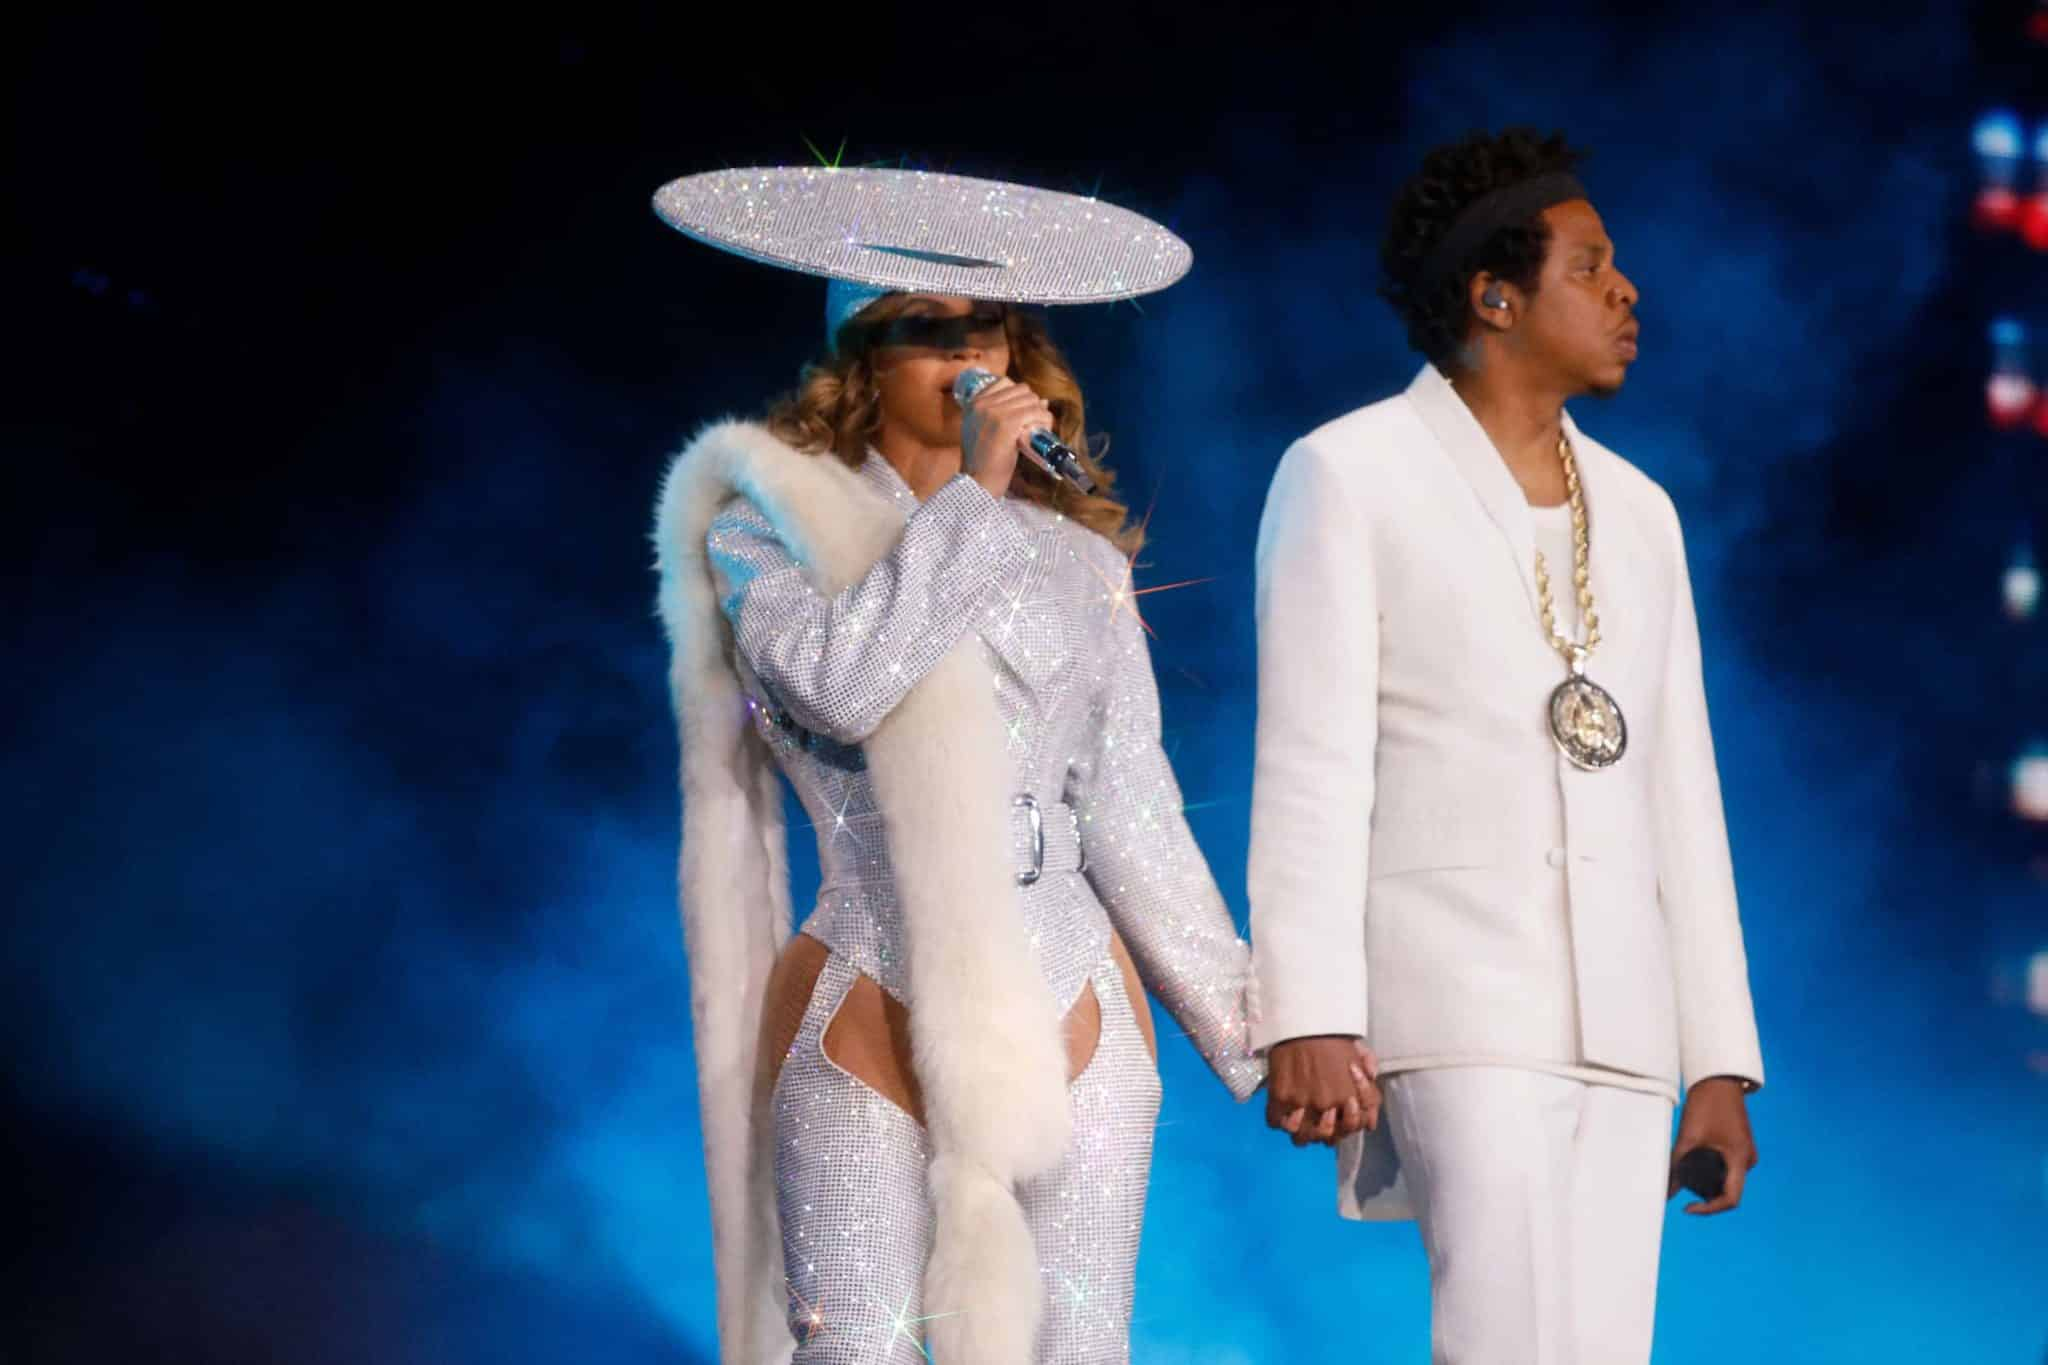 VANCOUVER - OCTOBER 2: Beyonce and Jay-Z perform on the 'On The Run II' tour at BC Place on October 2, 2018 in Vancouver, Canada. (Photo by Raven Varona/Parkwood/PictureGroup)